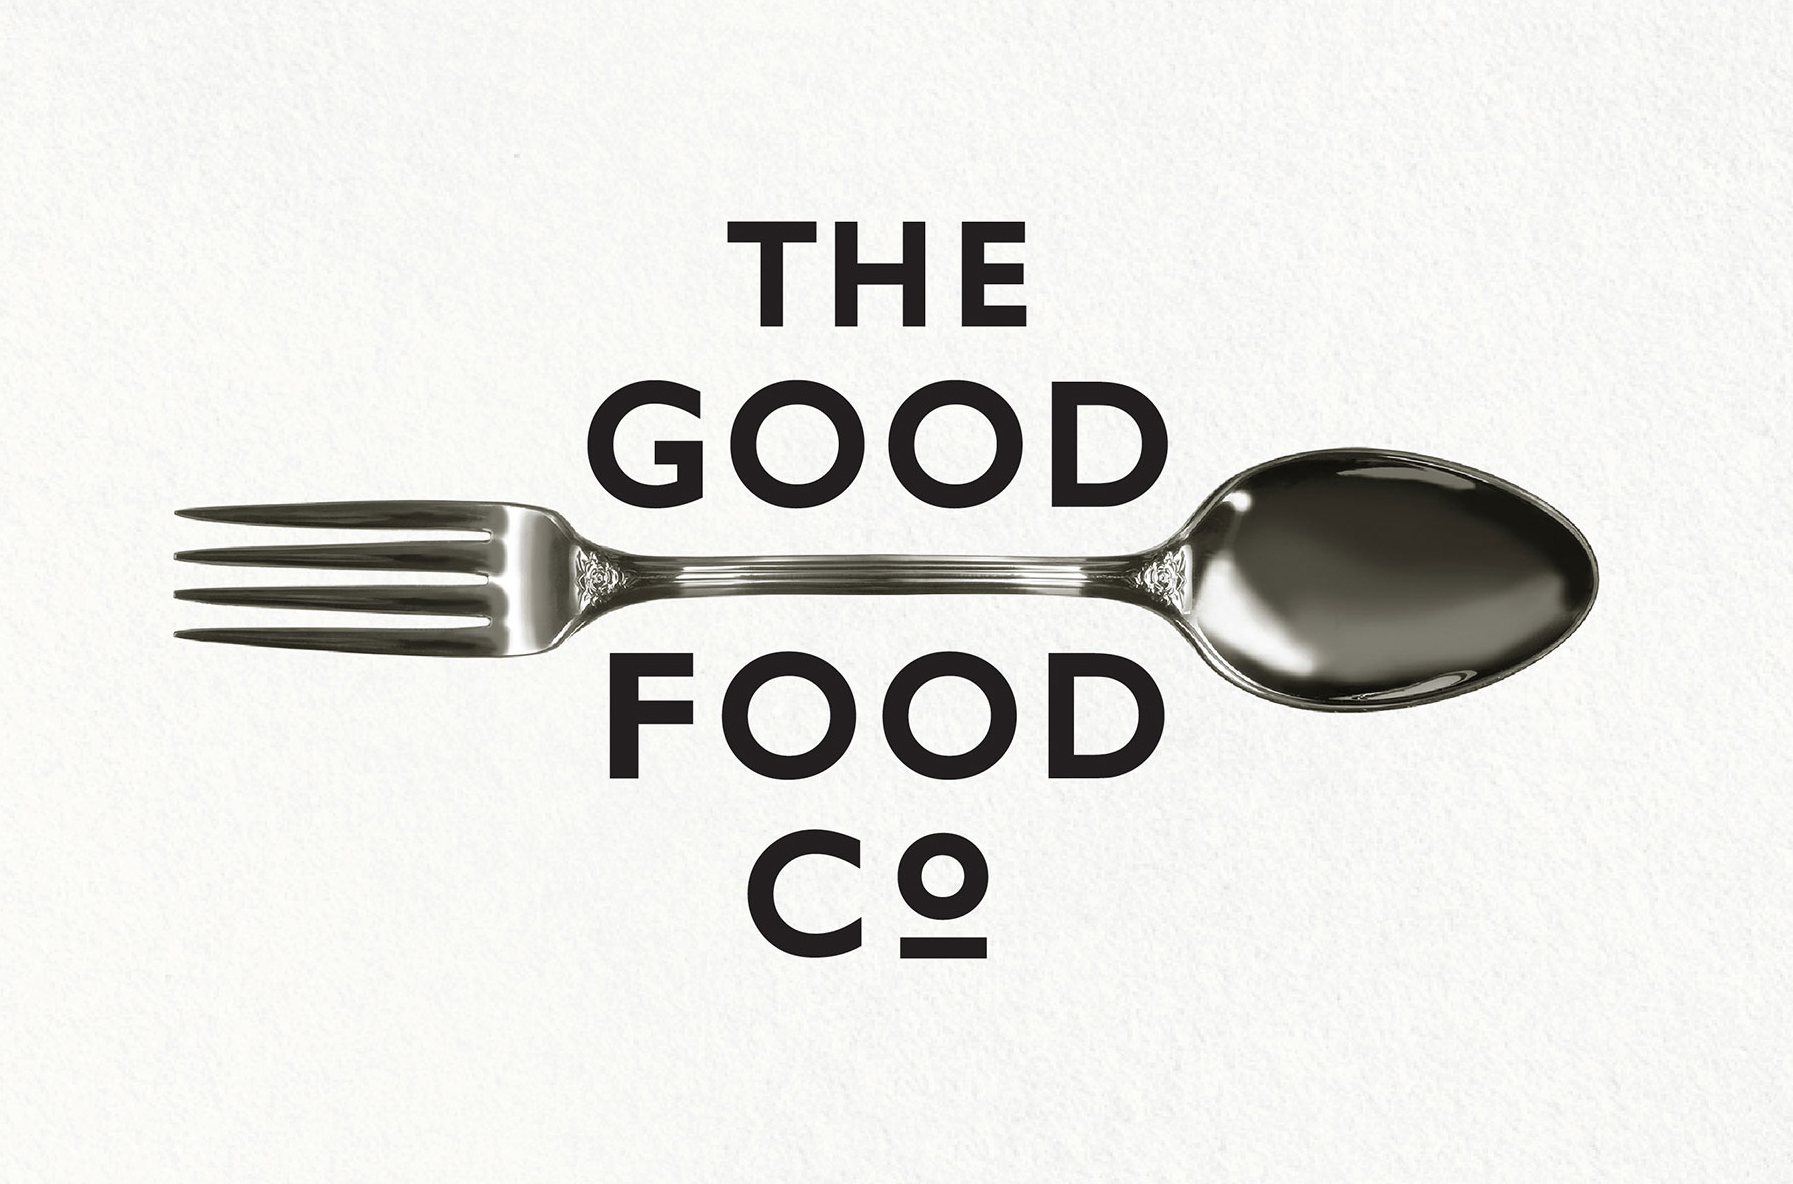 Harcus_good food co